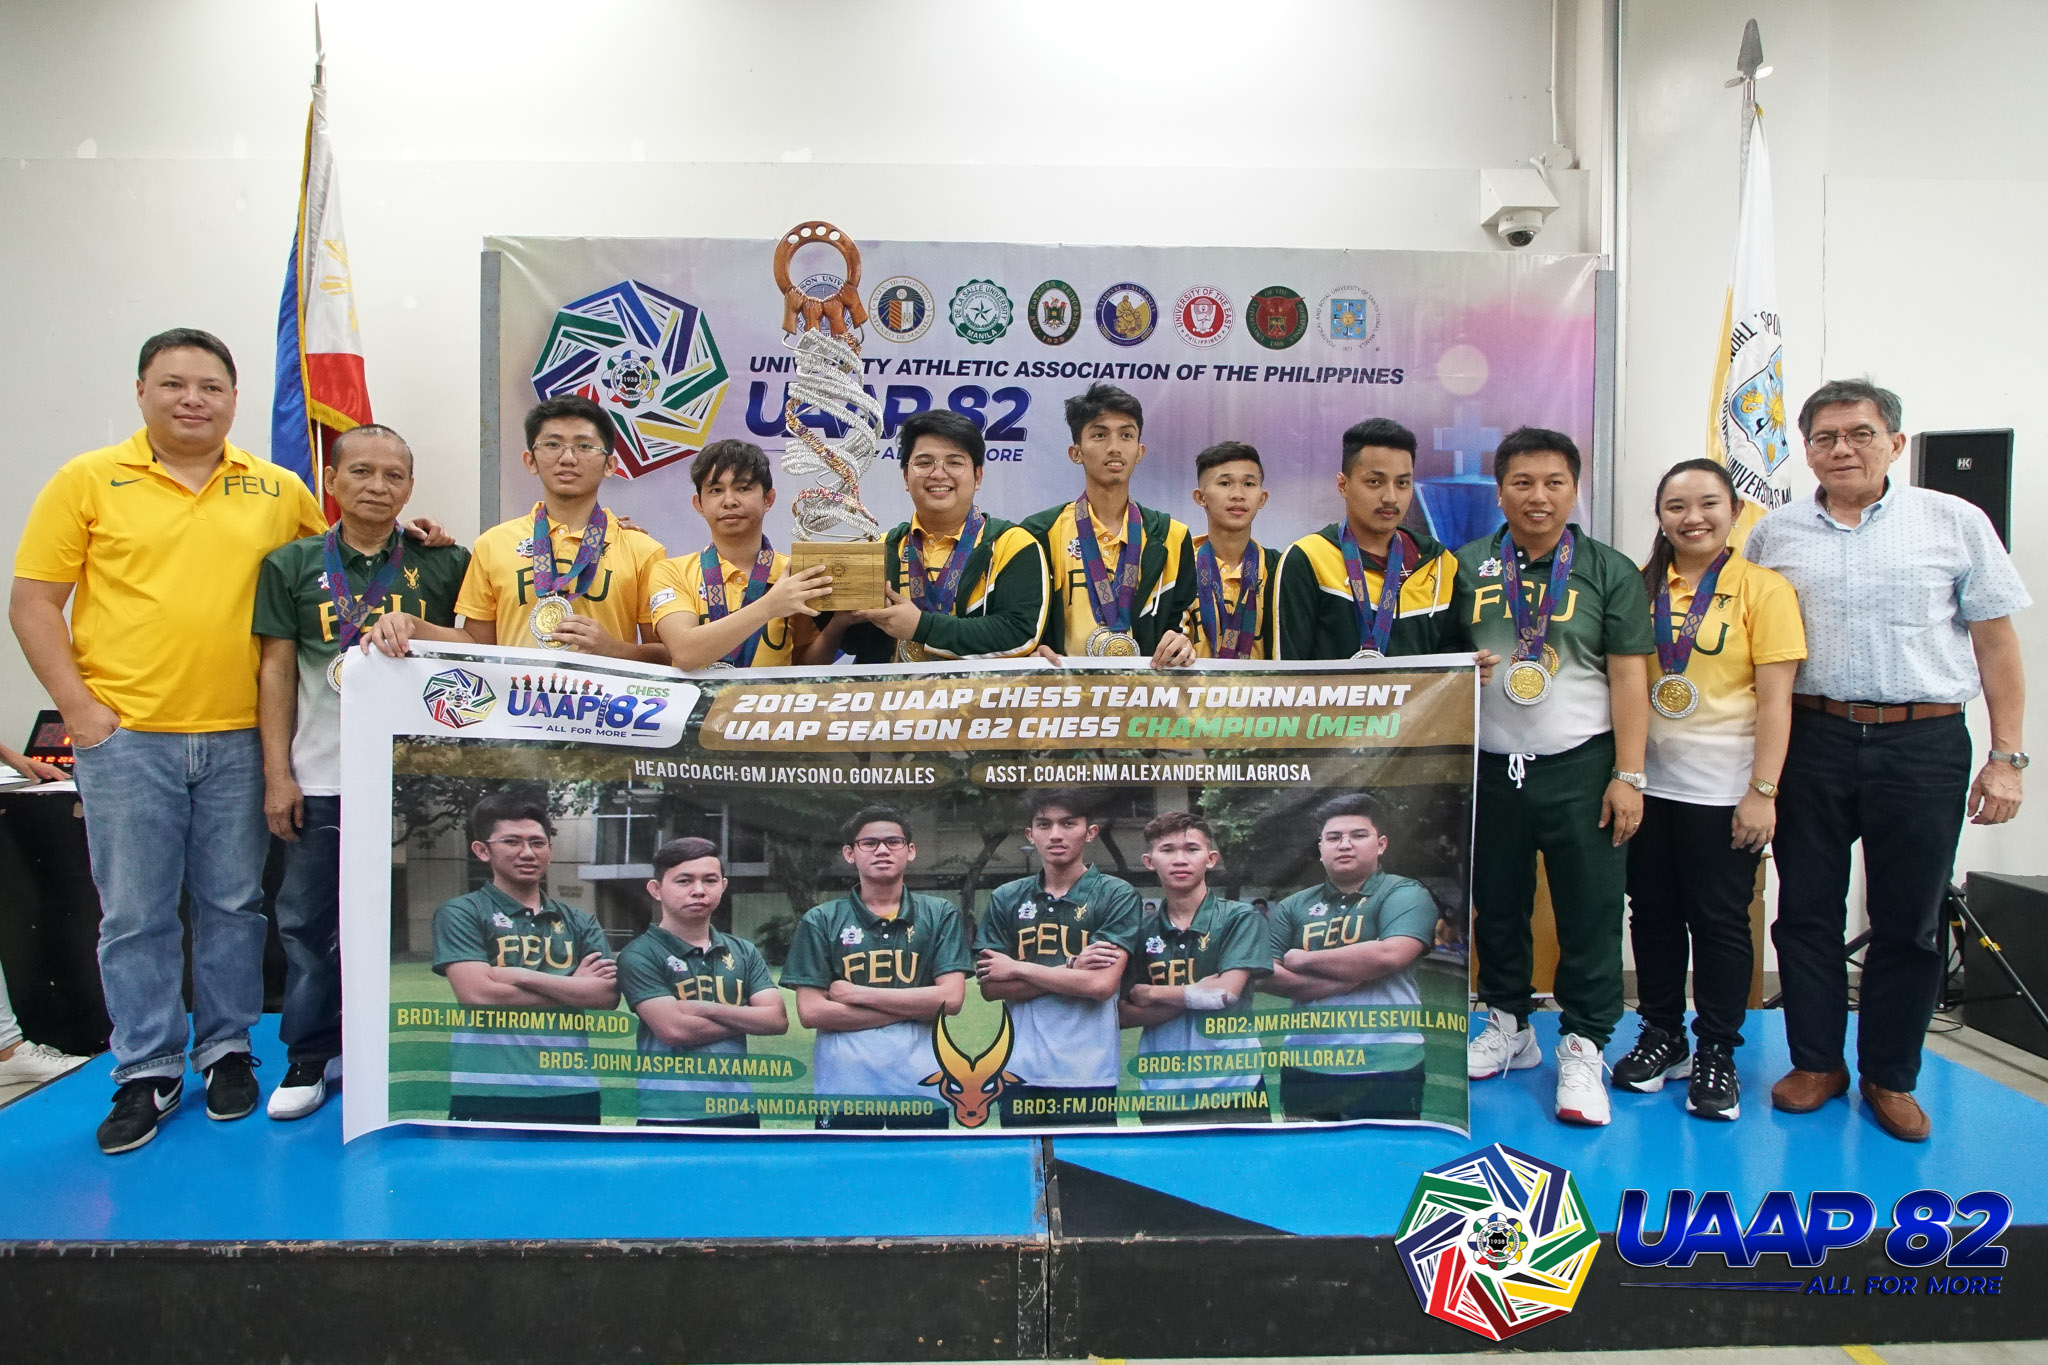 Tiebreaker Times Jacutina hailed rookie MVP as FEU completes run to 15th UAAP Chess crown ADMU Chess FEU News NU UAAP UP UST  UST Men's Chess UP Men's Chess UAAP Season 82 Men's Chess UAAP Season 82 Tristan Jared Cervero RK Sevillano NU Men's Chess JM Jacutina Jeth Romy Morado Israelito Rilloraza FEU Men's Chess Ateneo Men's Chess AJ Almodal